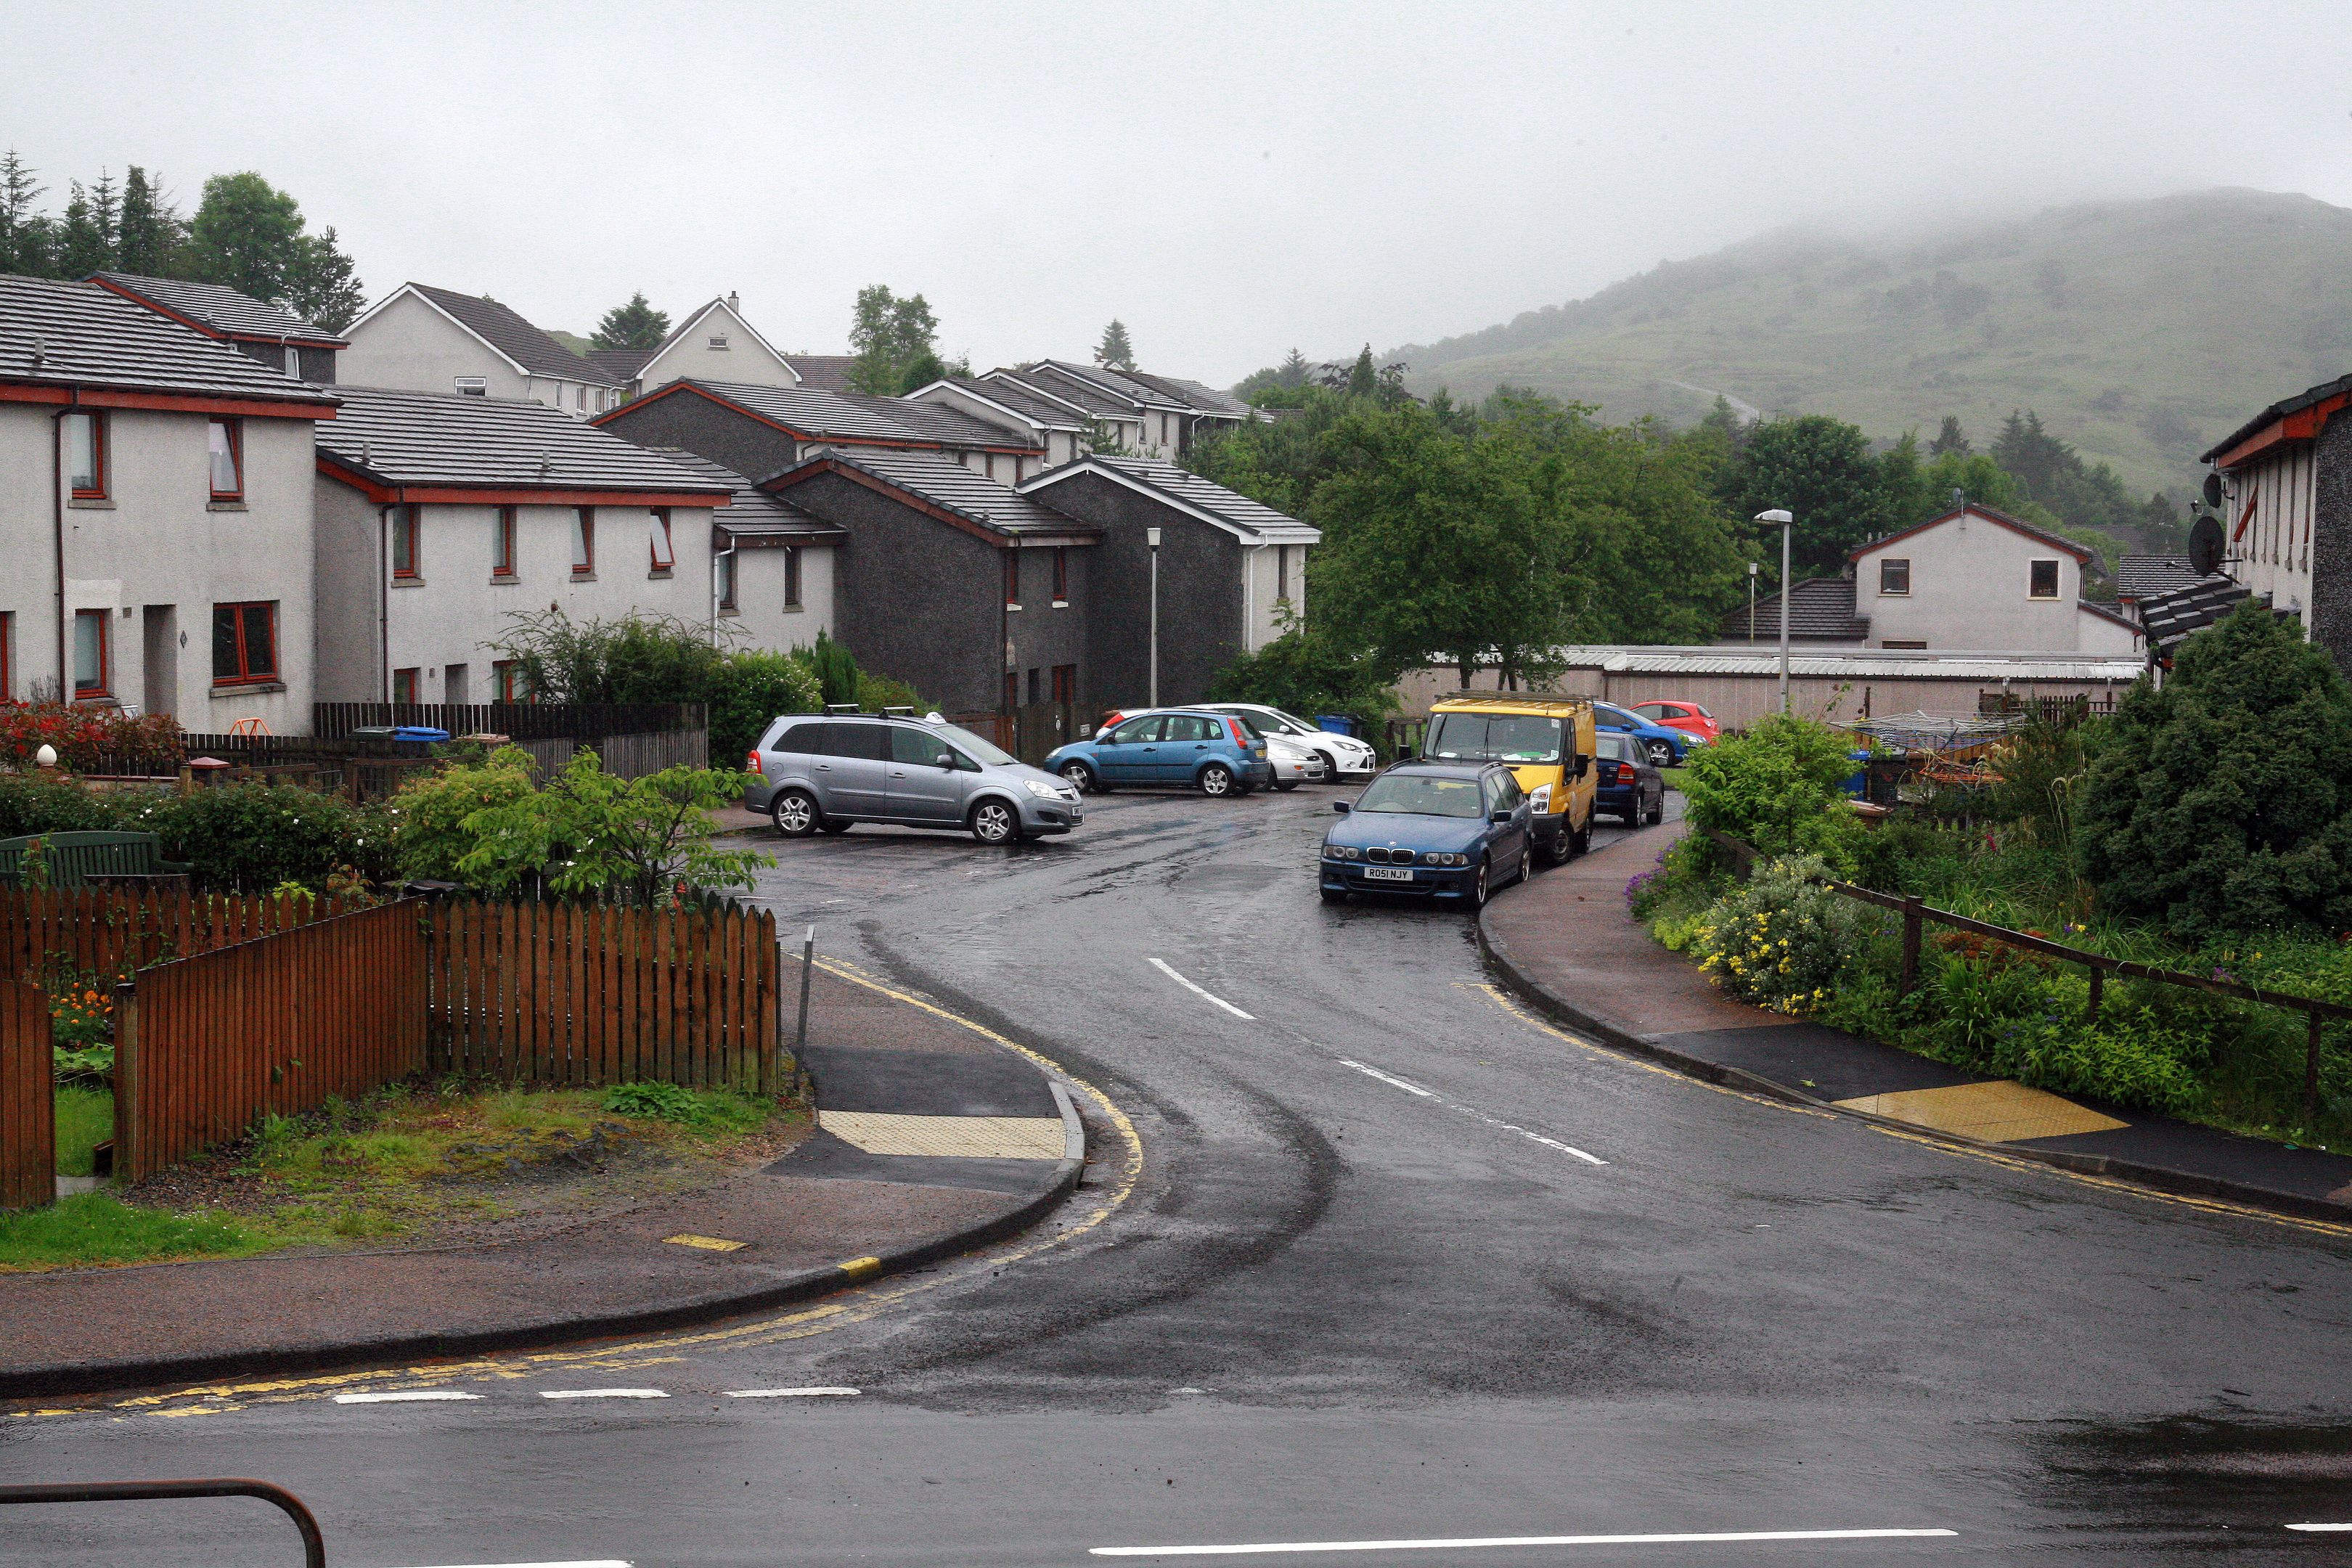 The area where the man approached the girls, in Banff Crescent